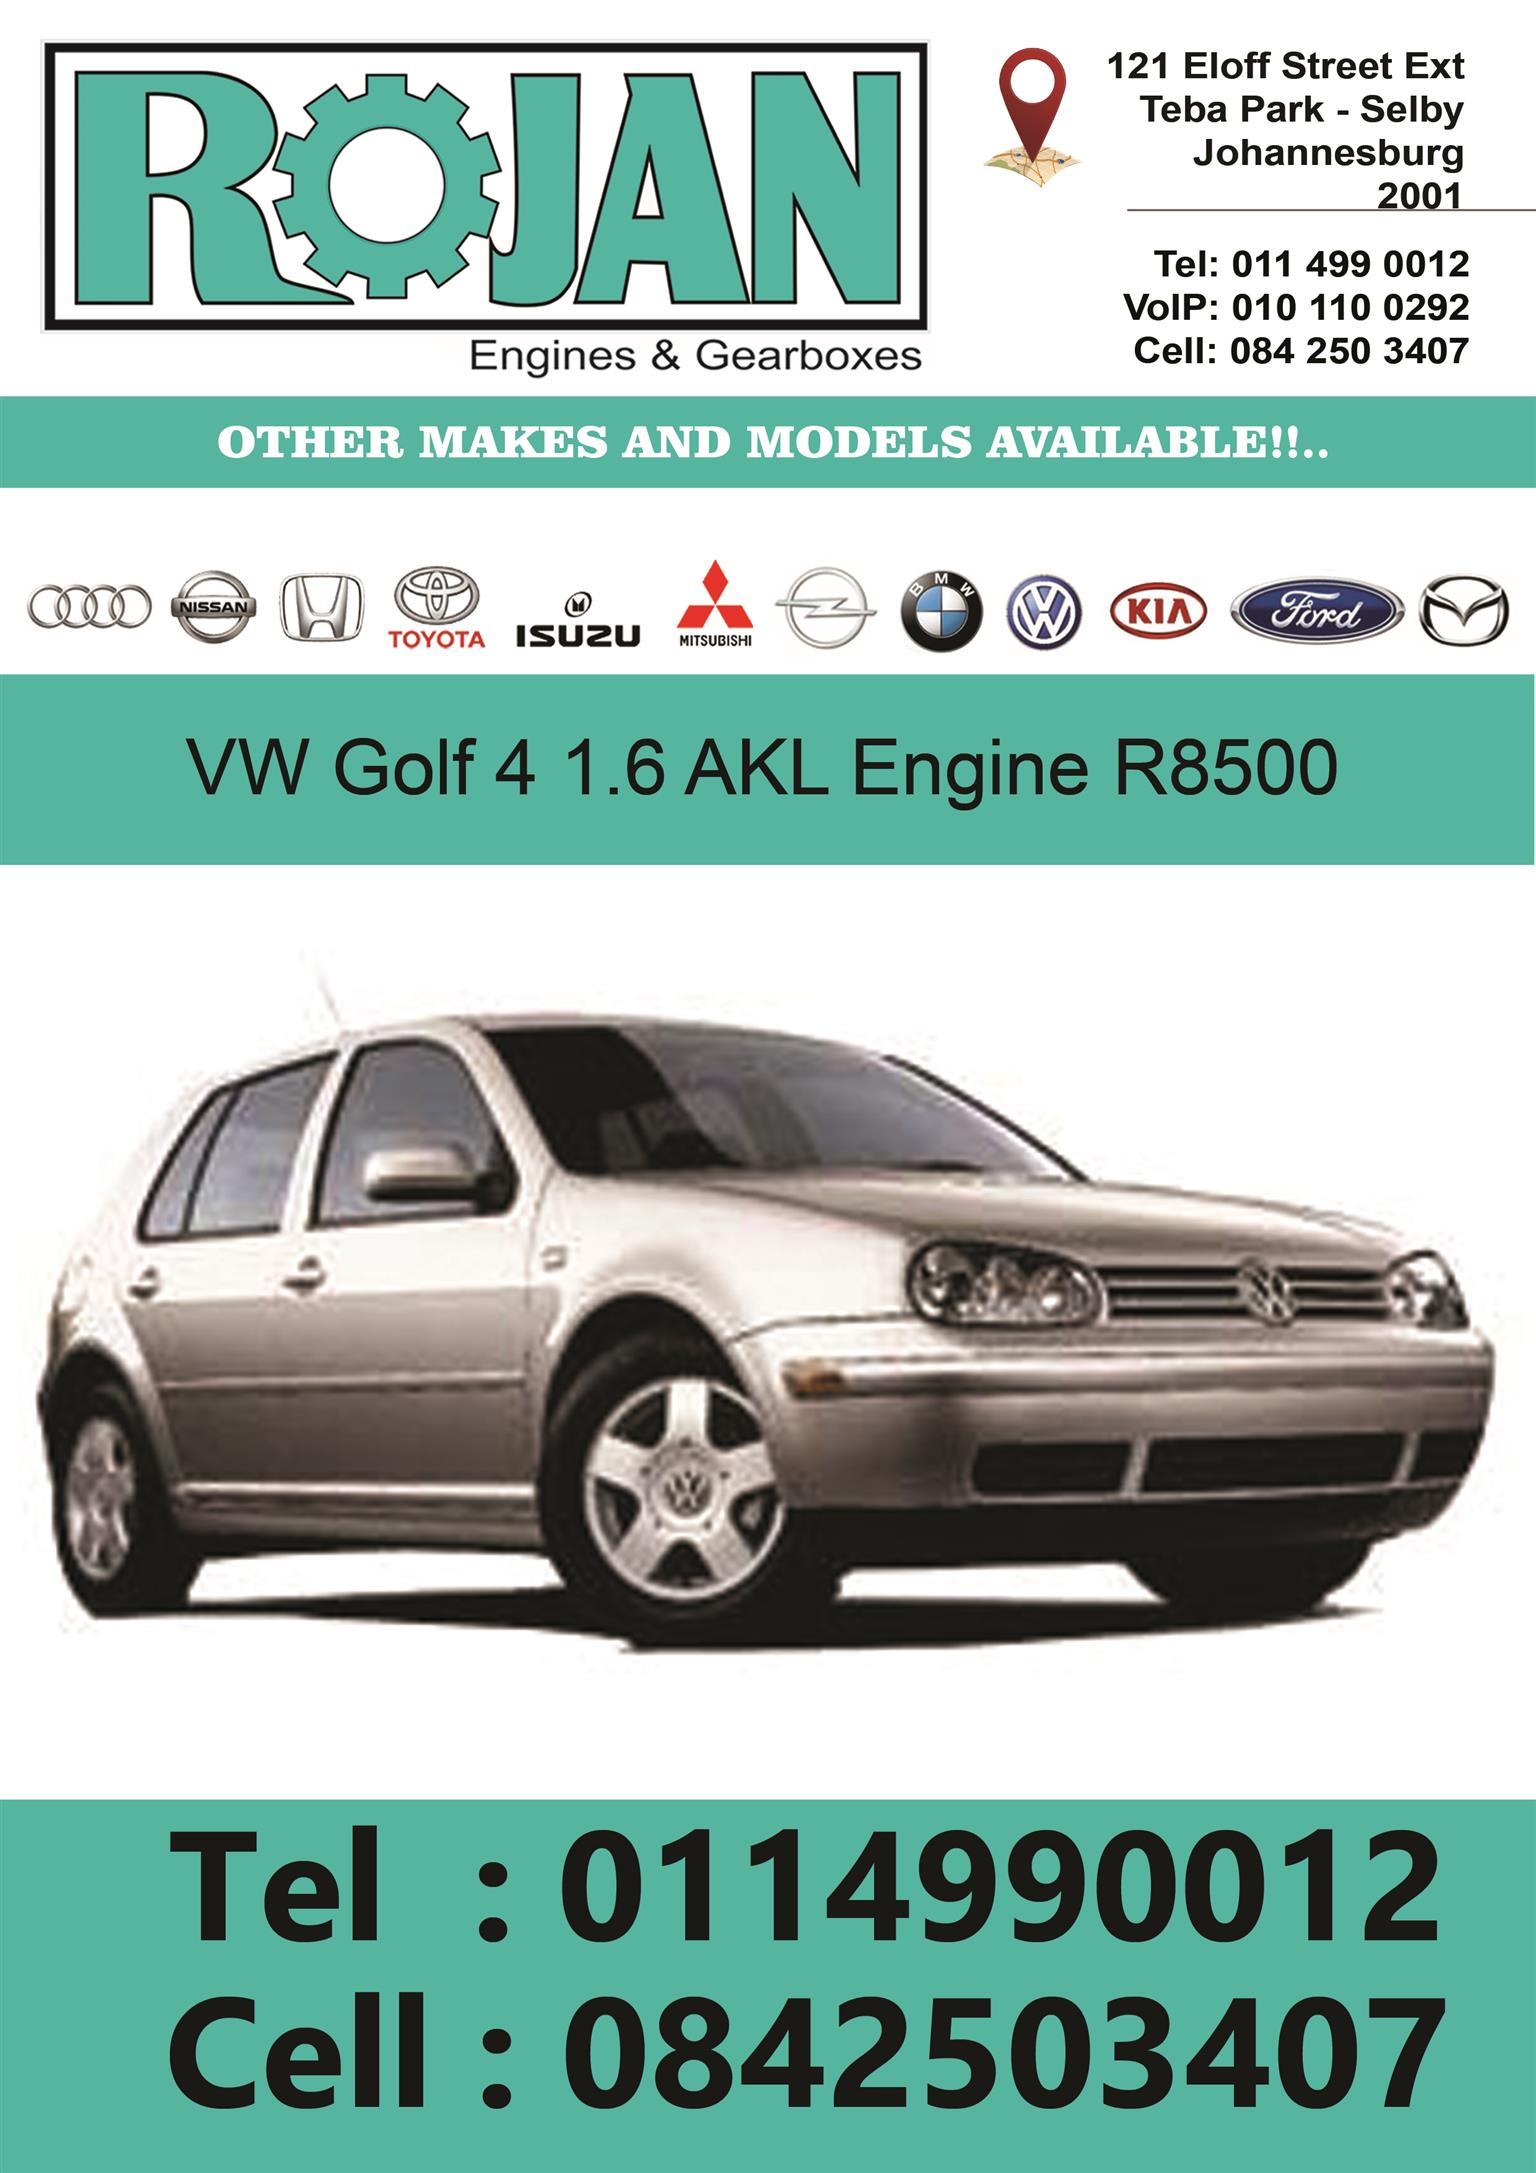 VW AKL  COMPLETE IMPORT LOW MILEAGE ENGINES